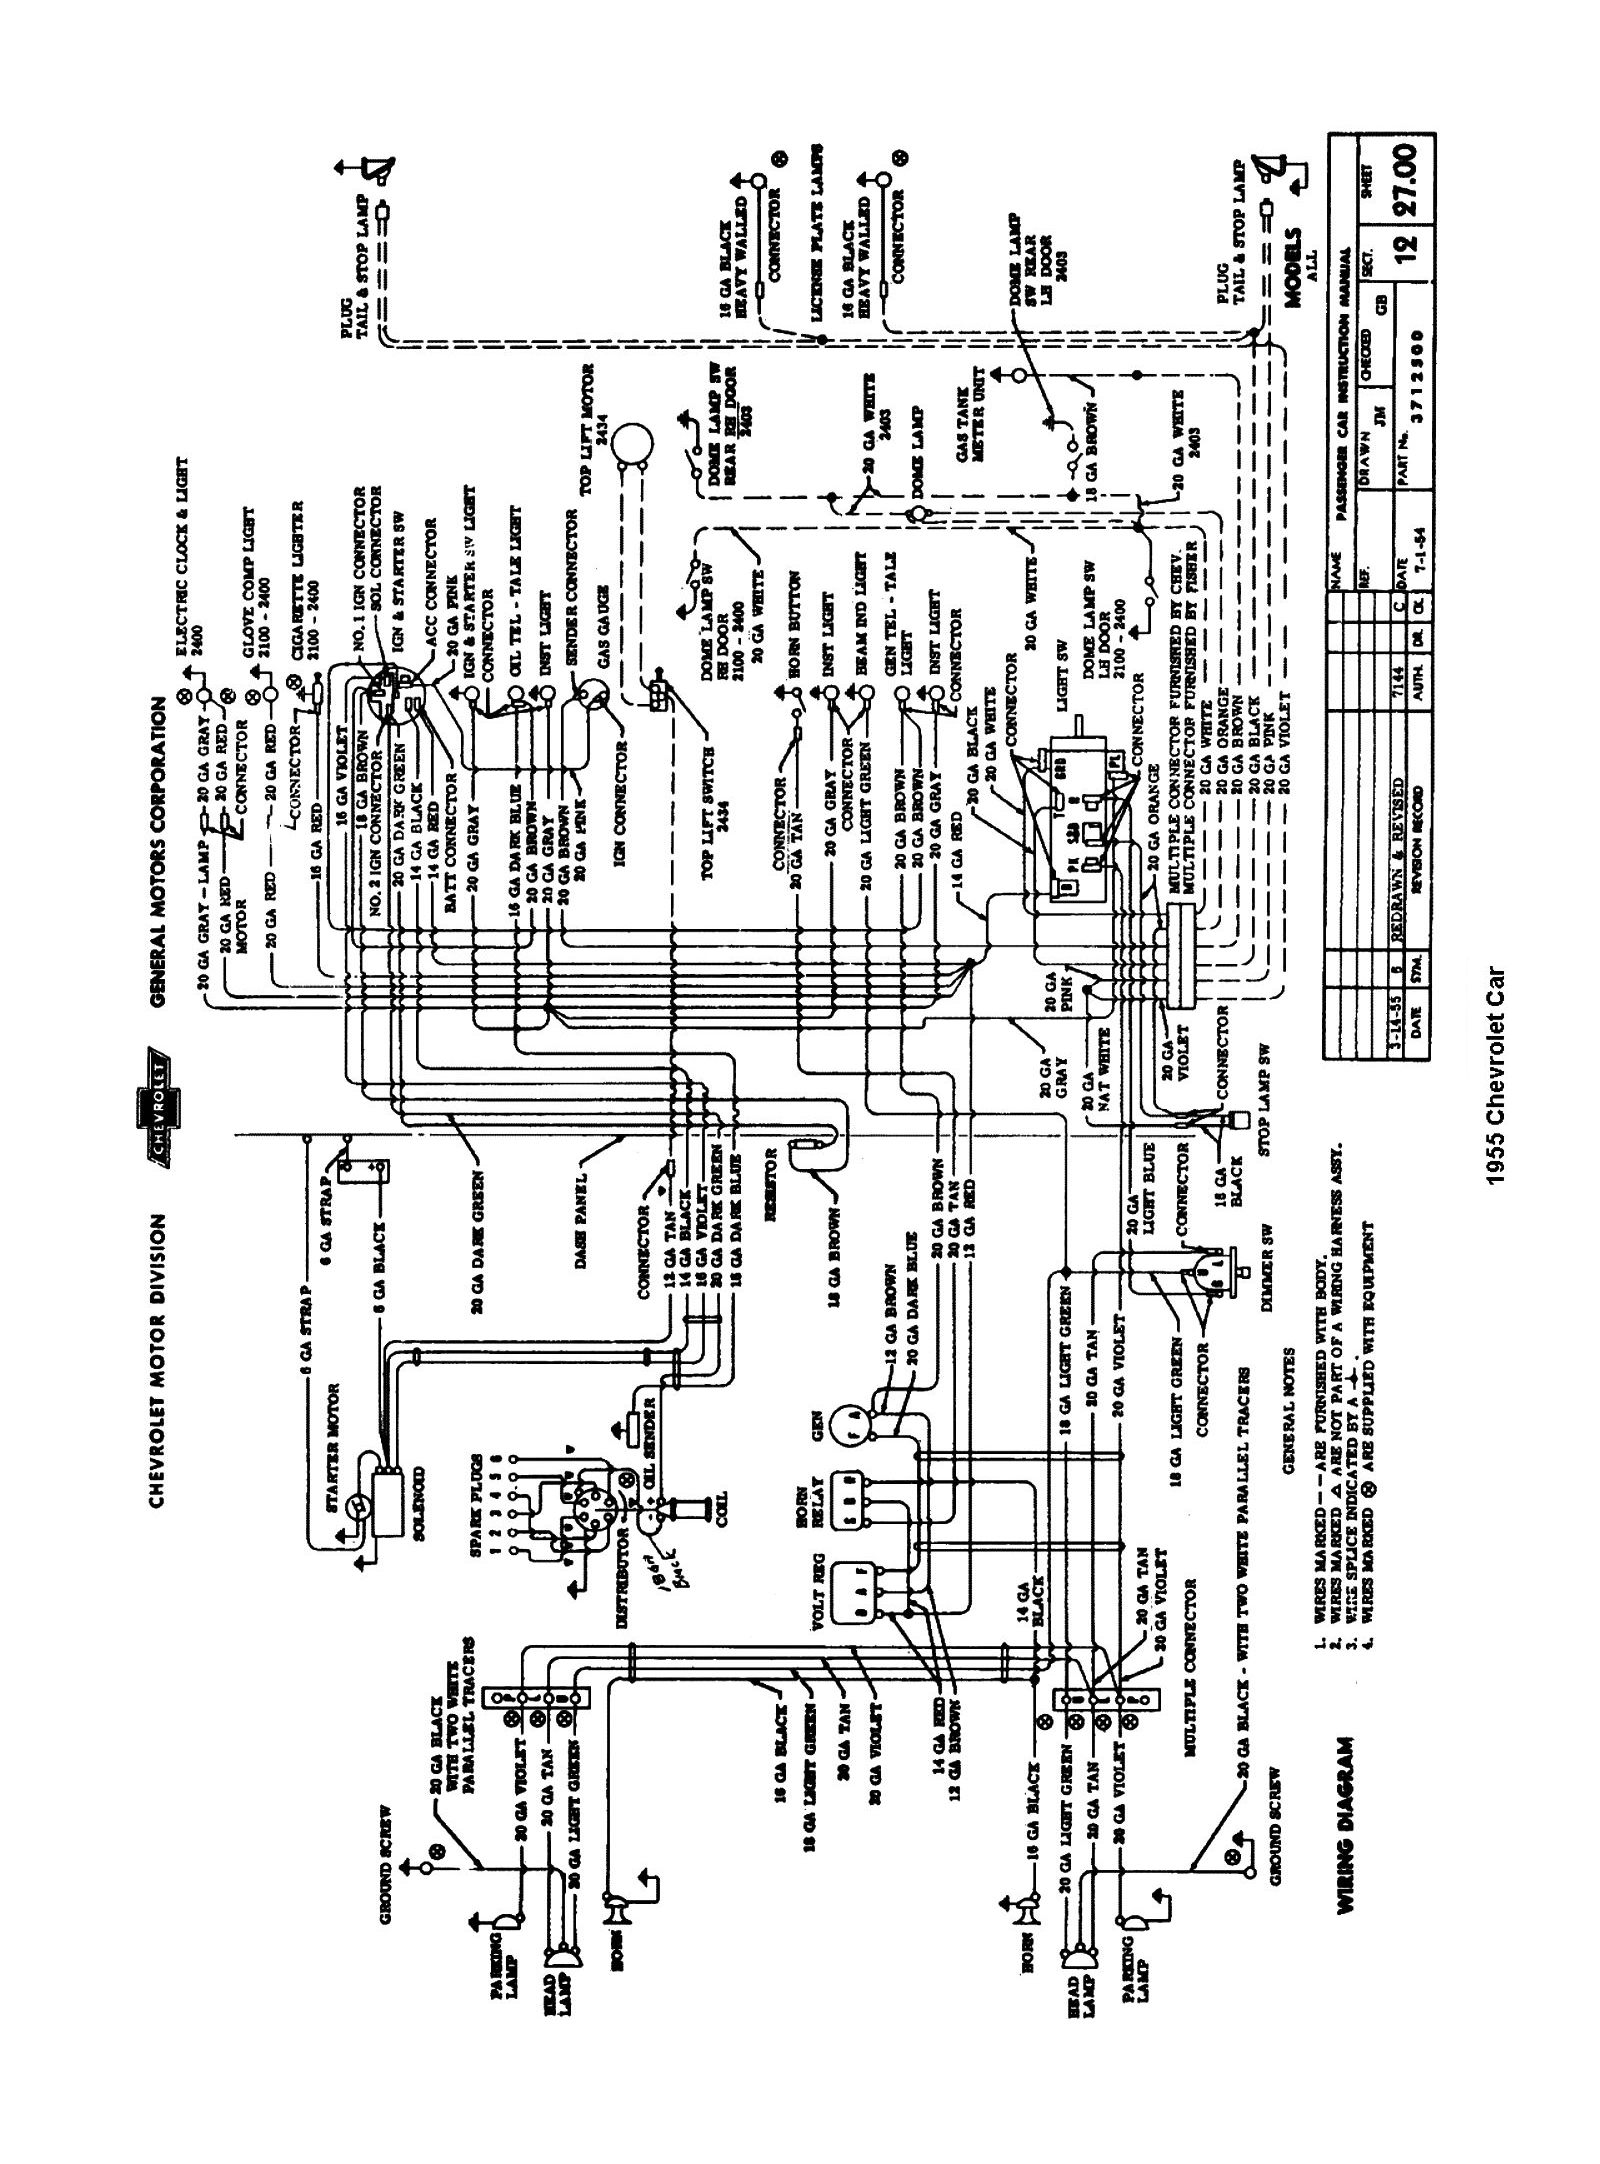 chevy wiring diagrams rh chevy oldcarmanualproject com Chevy Wiring Diagrams Automotive Chevy Wiring Diagrams Automotive